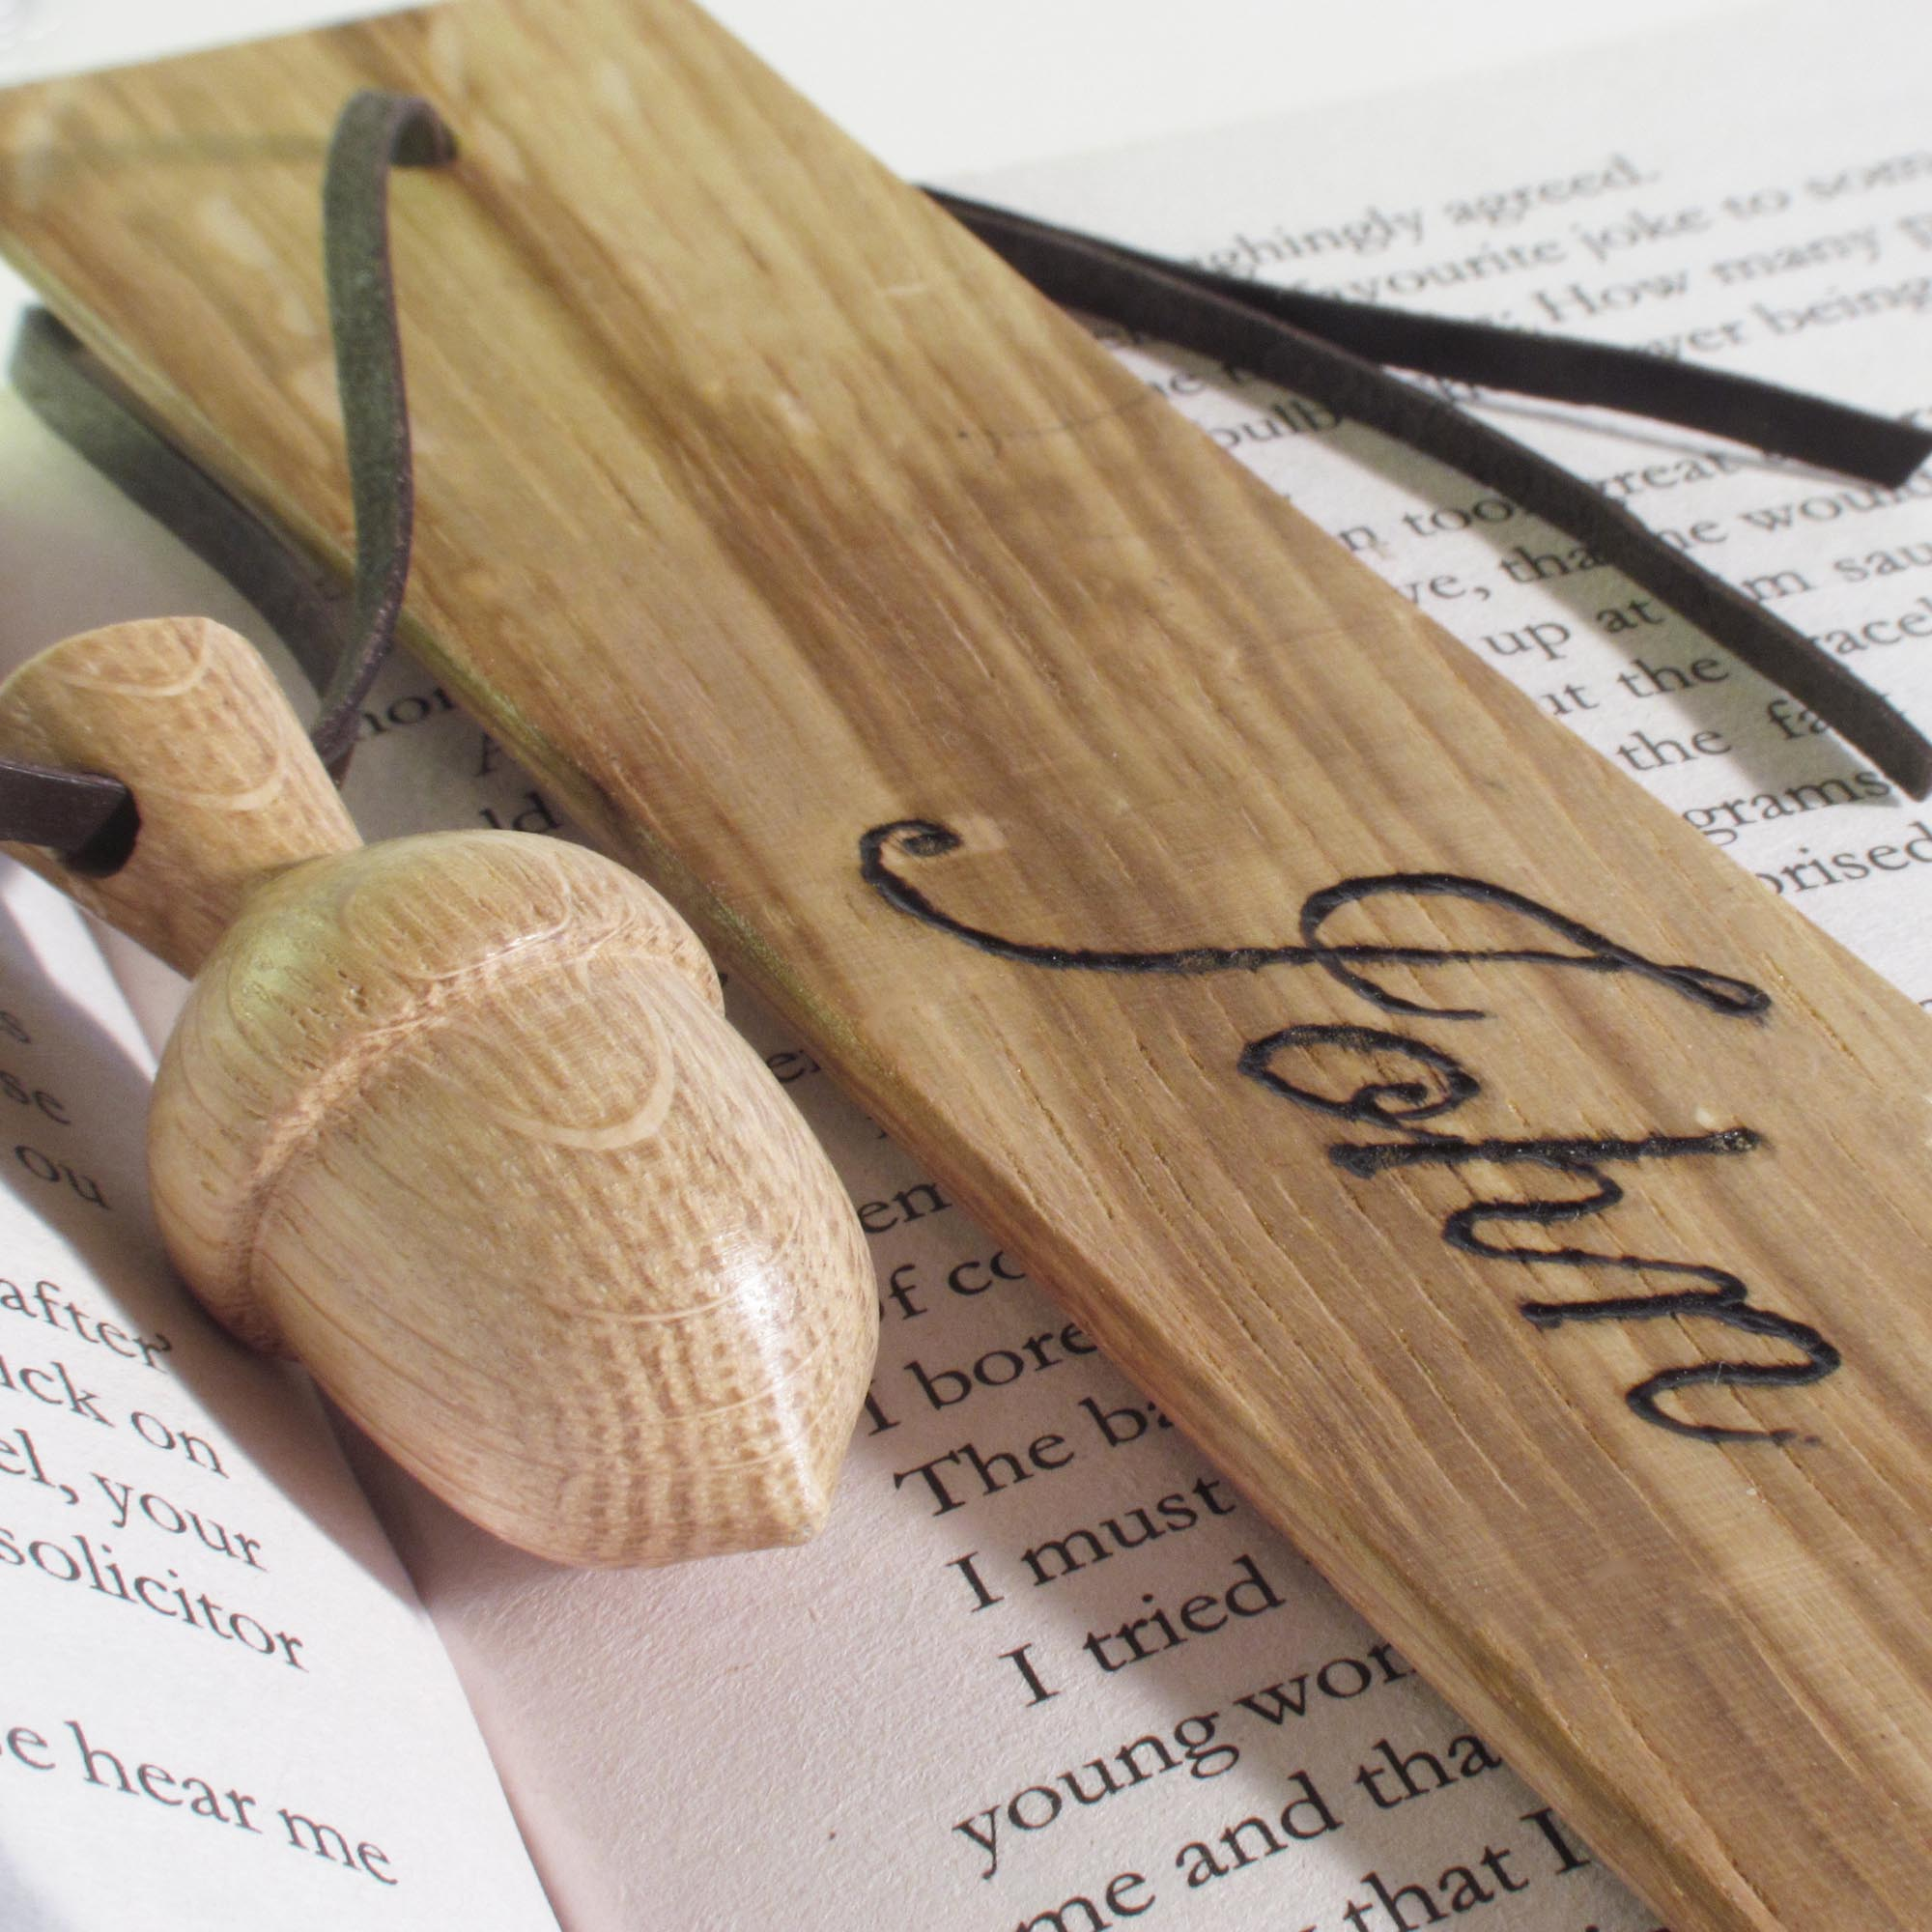 Bookmark made from wood